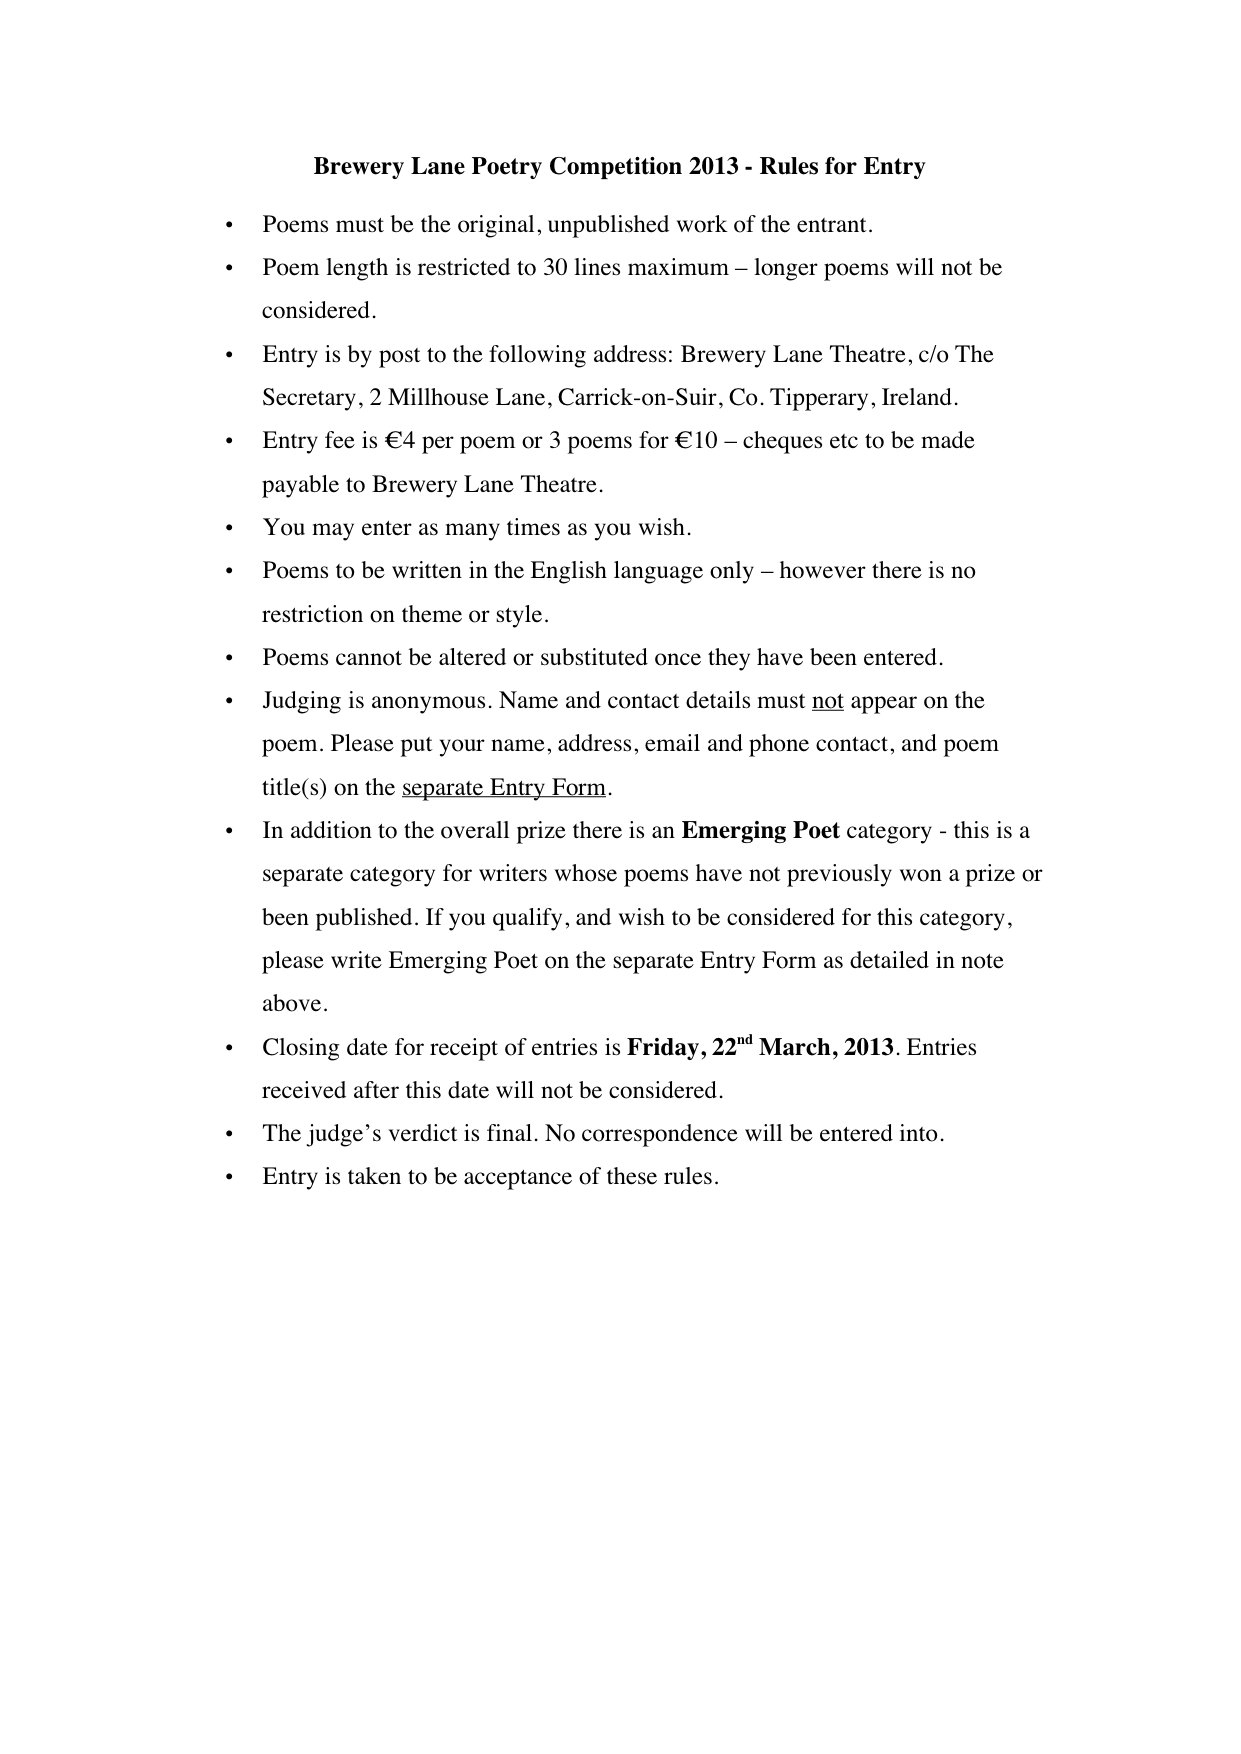 Brewery Lane Poetry Competition Entry Rules Writing